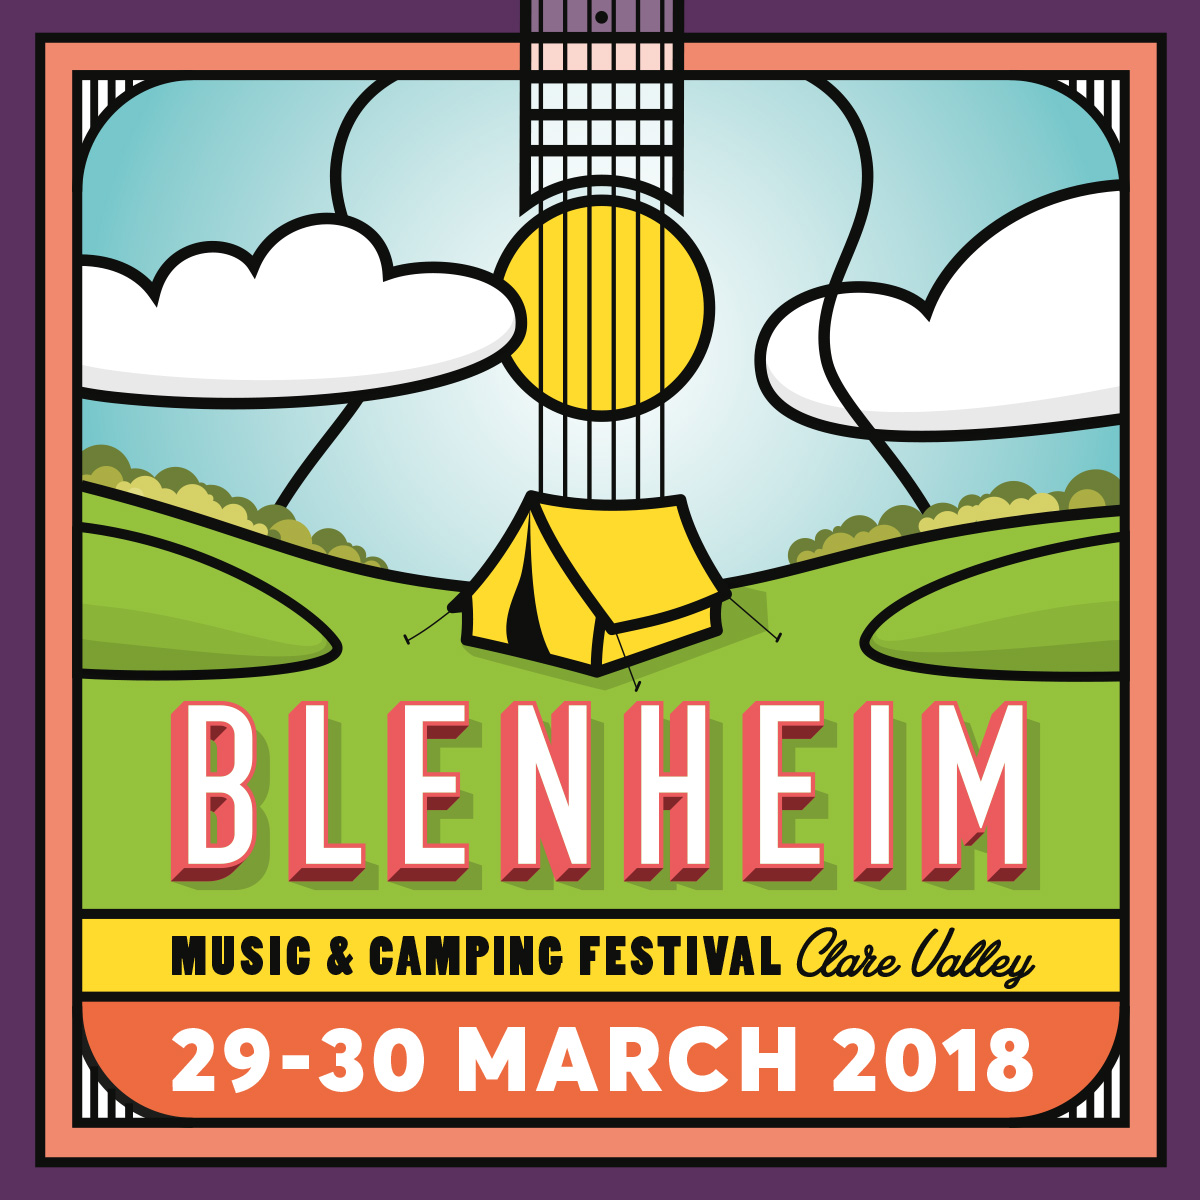 Blenheim2018-Instagram-1200A.jpg